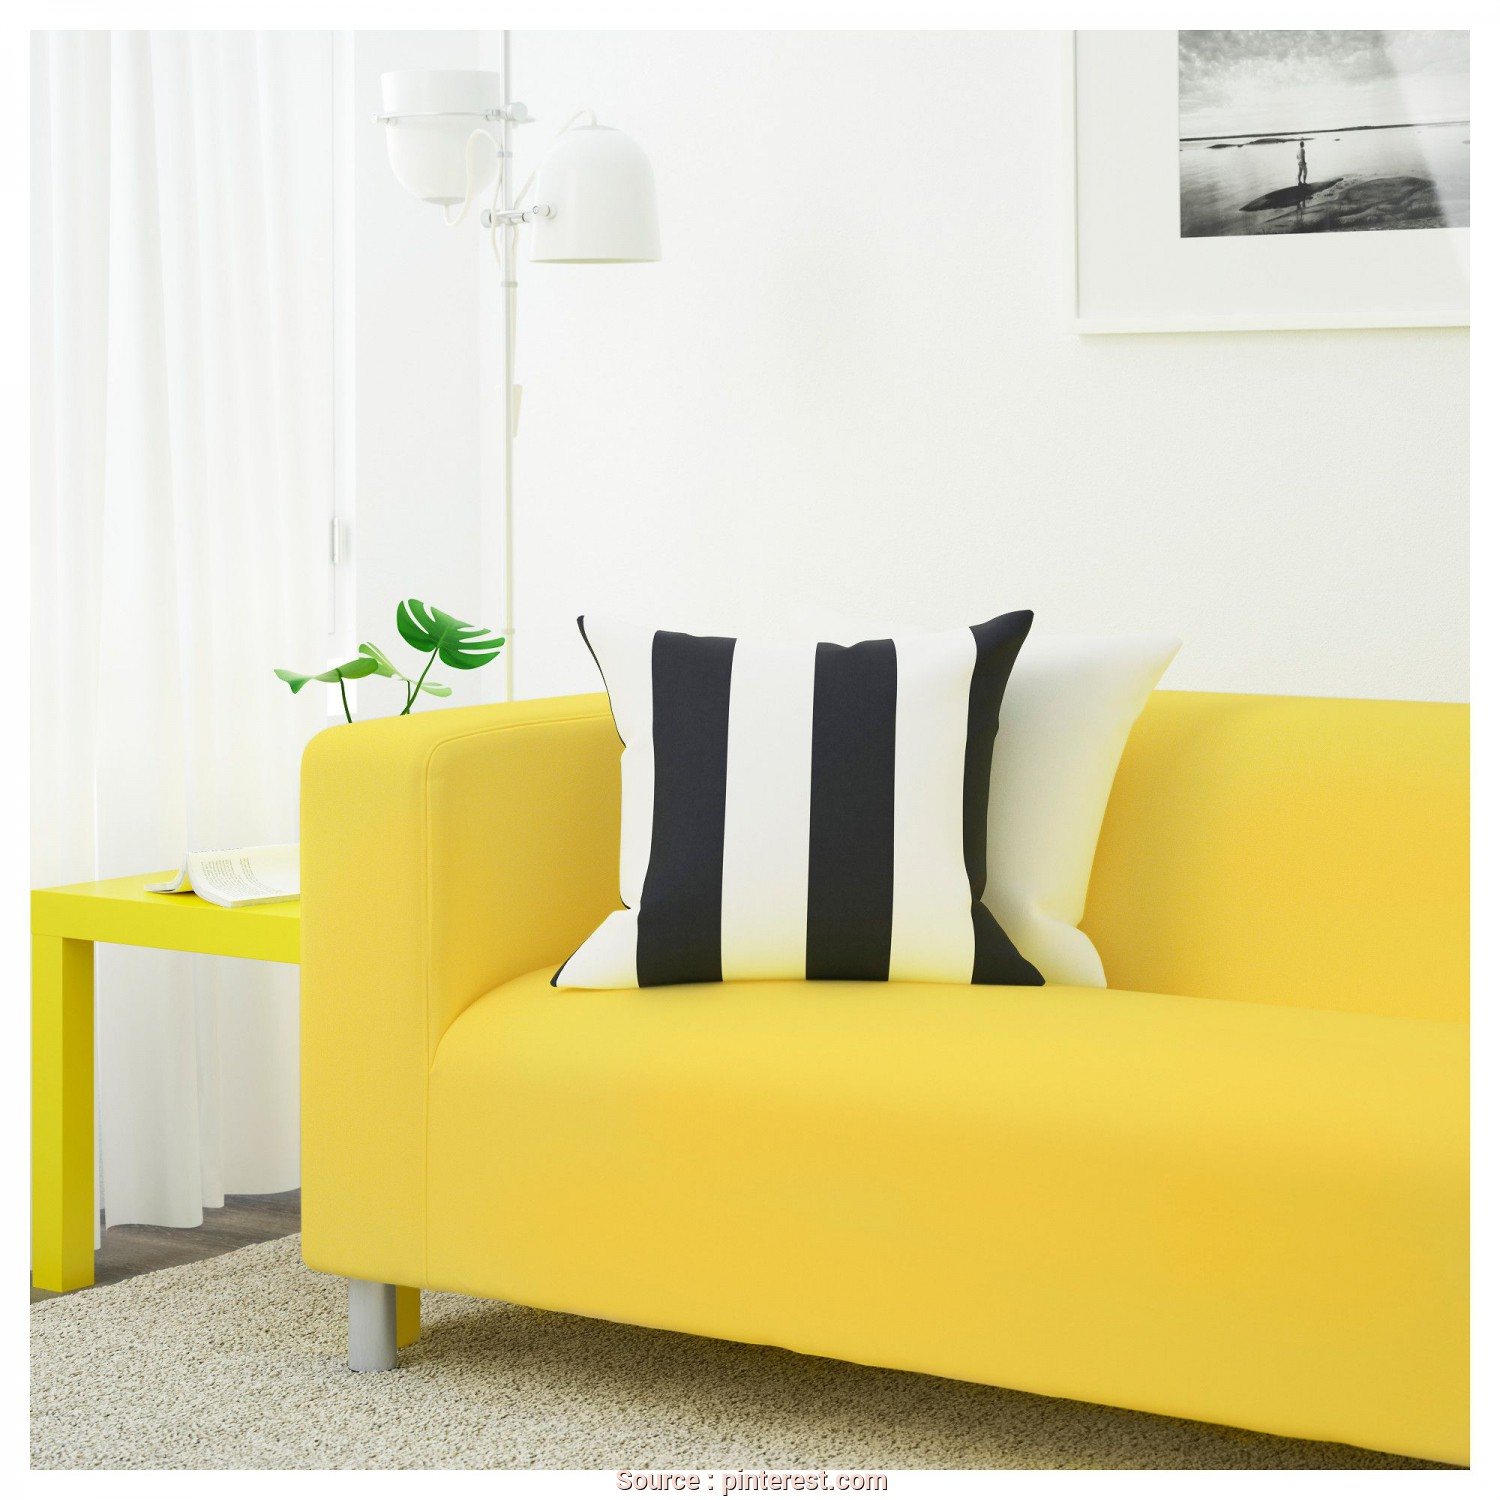 Ikea Klippan Yellow, Amabile IKEA, KLIPPAN Loveseat Vissle Yellow, Products, Pinterest